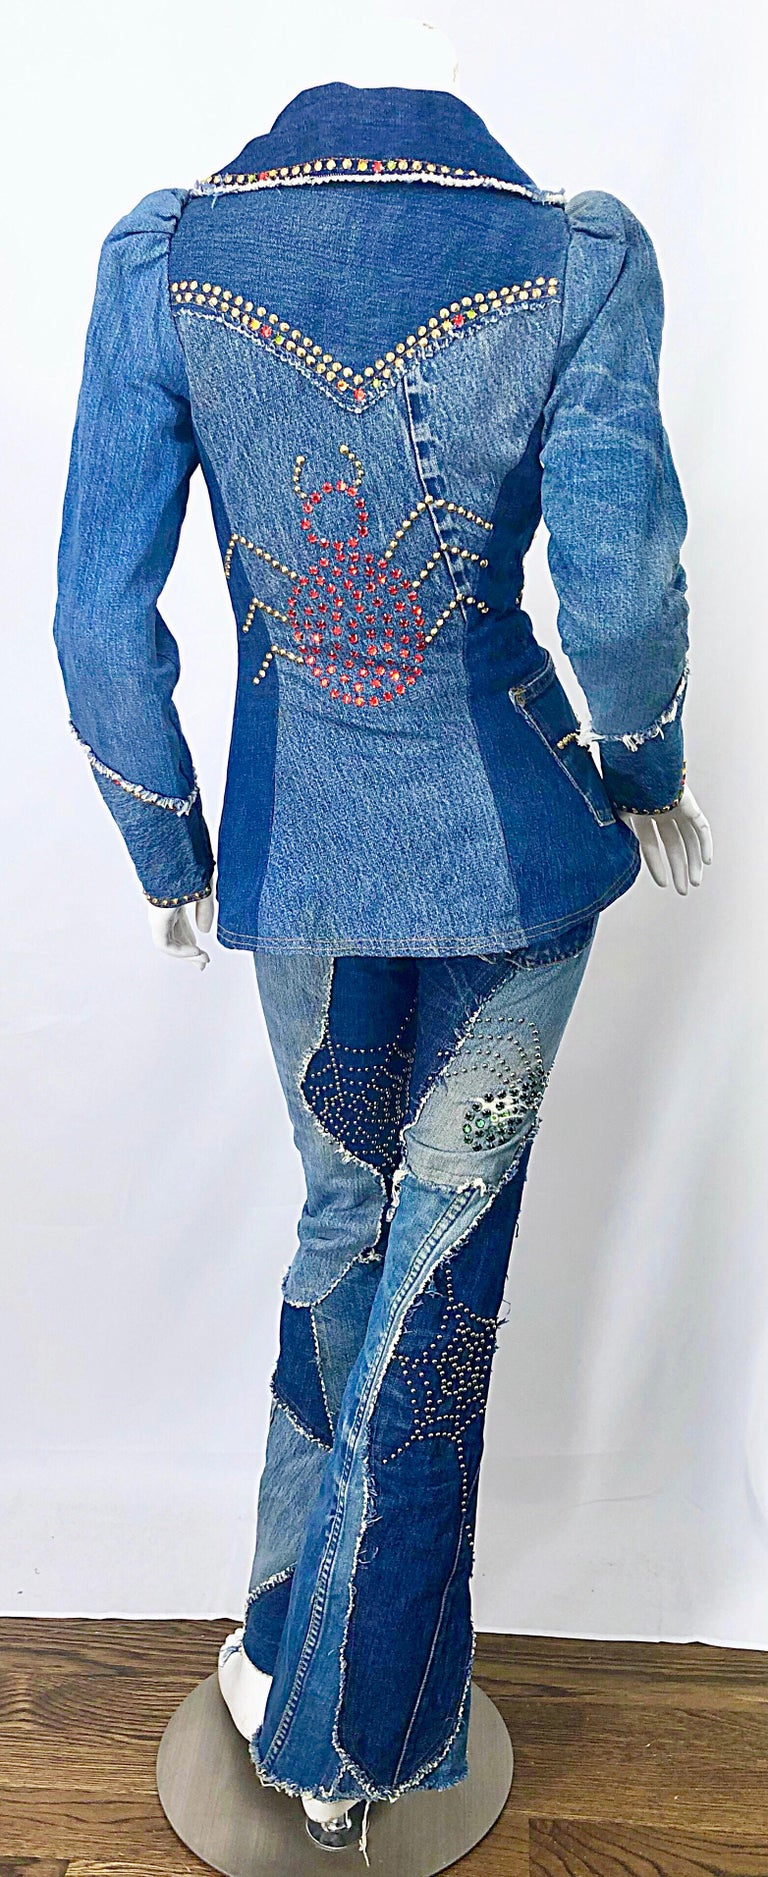 Amazing musuem quality LOVE, MELODY custom denim blue jean ensemble! Melody Sabastasso was known for her custom made denim work. She solely used Levi's denim, and dressed everyone from Lenny Kravitz, Barbara Streisand, Sonny & Cher, Janis Joplin,